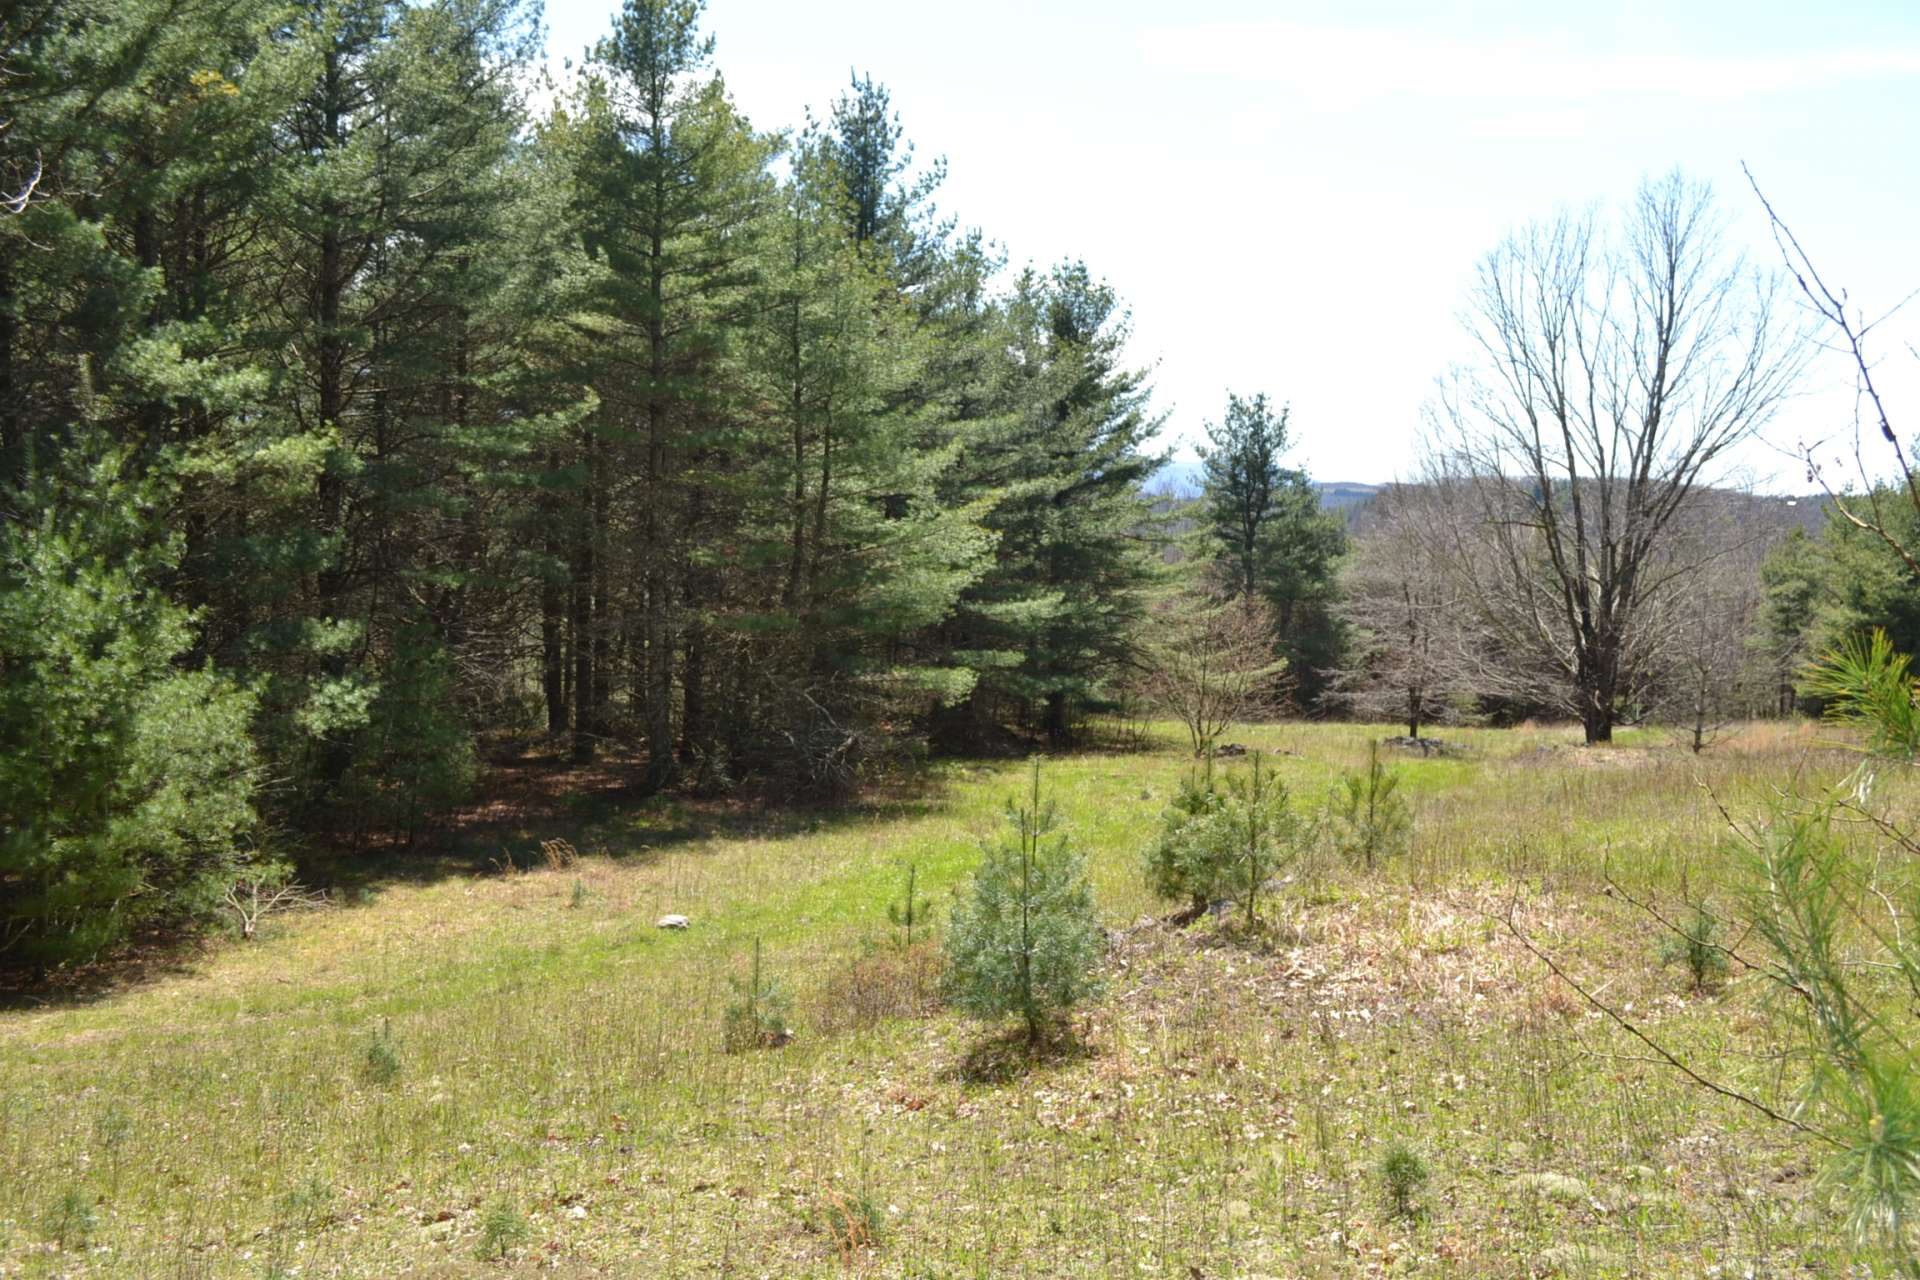 This is the first of three fields on the property, all buffered by serene woodlands.